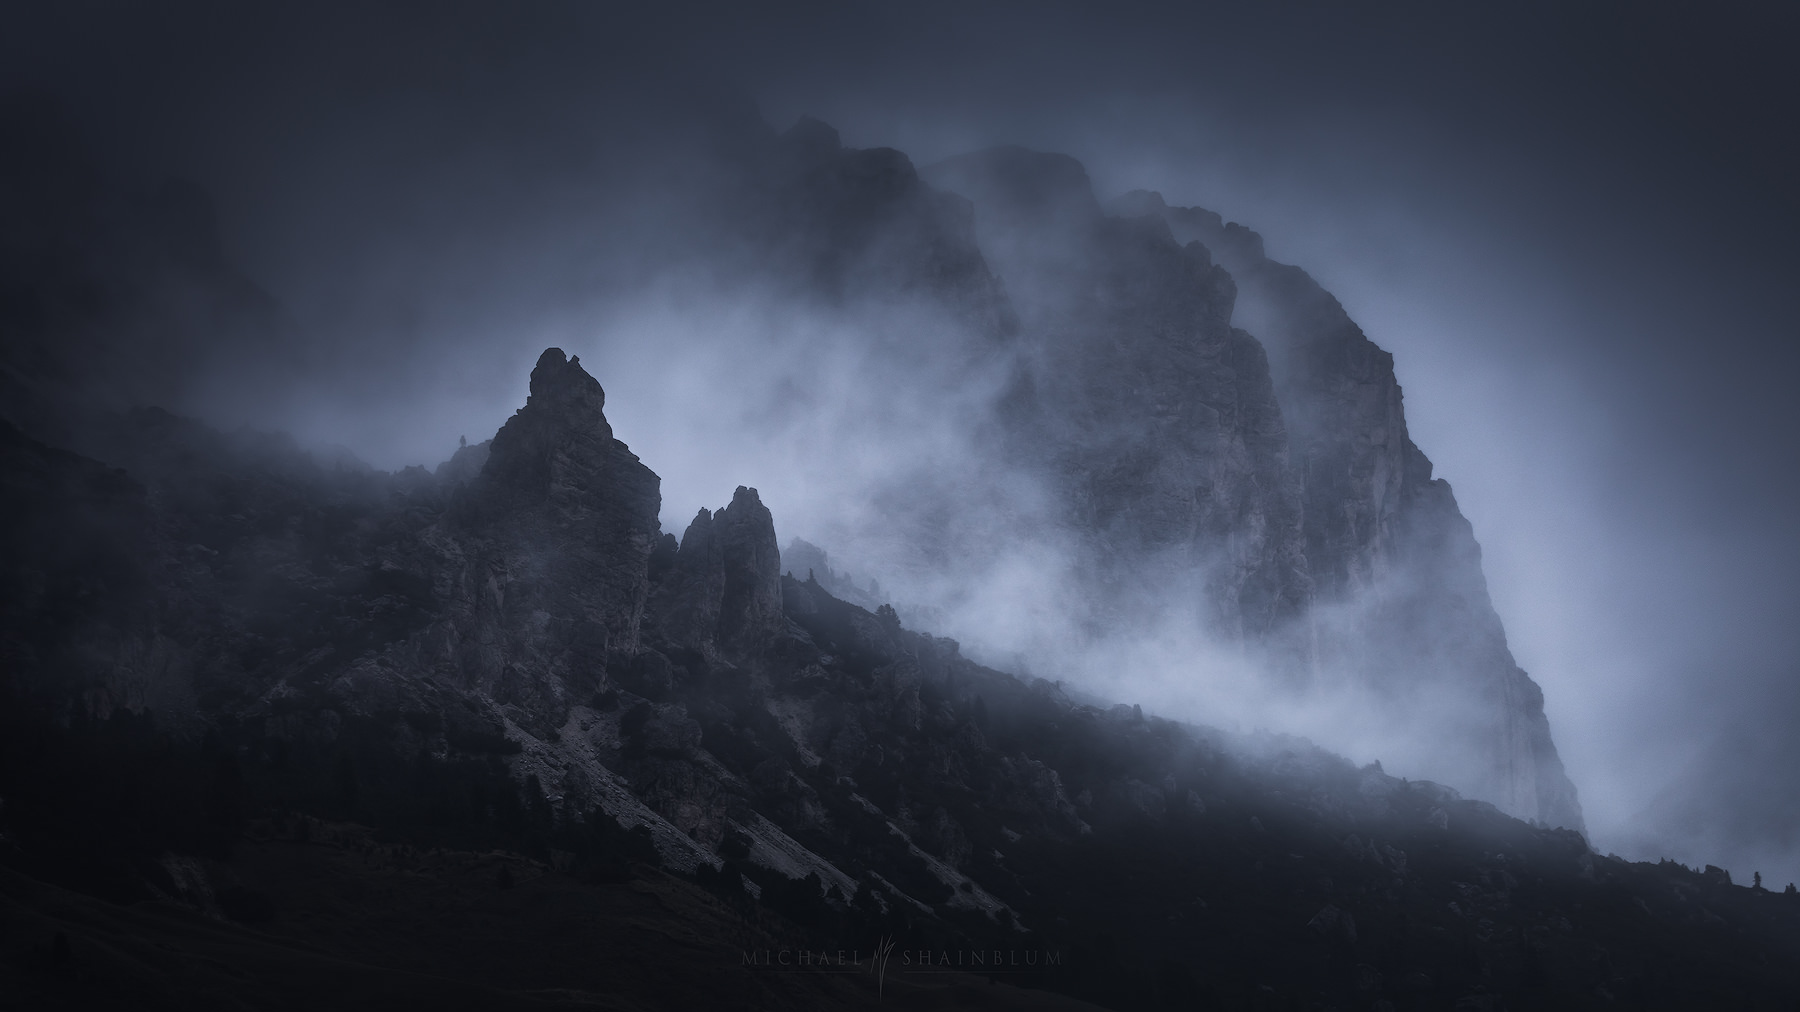 Fog Dolomites Mountain Landscape Photography